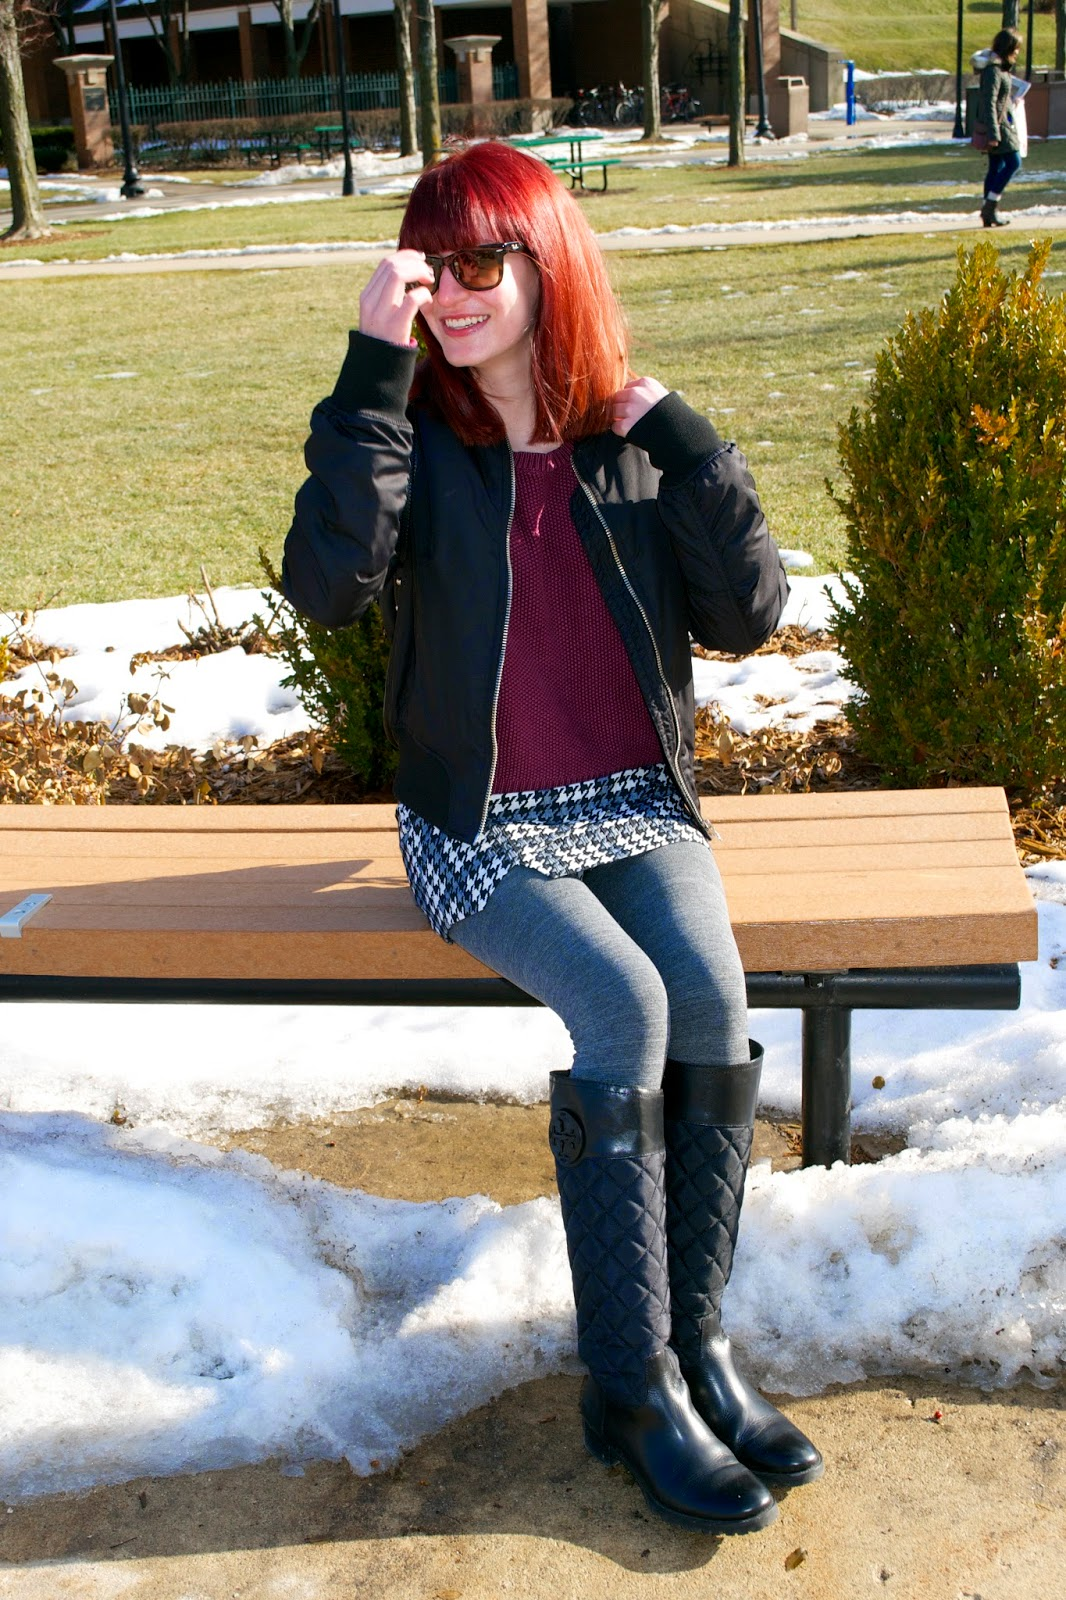 depaul fashion, tory burch boots, topshop bomber jacket, topshop skort, fleece lined tights, ray ban foldable wayfarer, milly backpack, what i wore, Fashion Faves, chicago fashion blogger